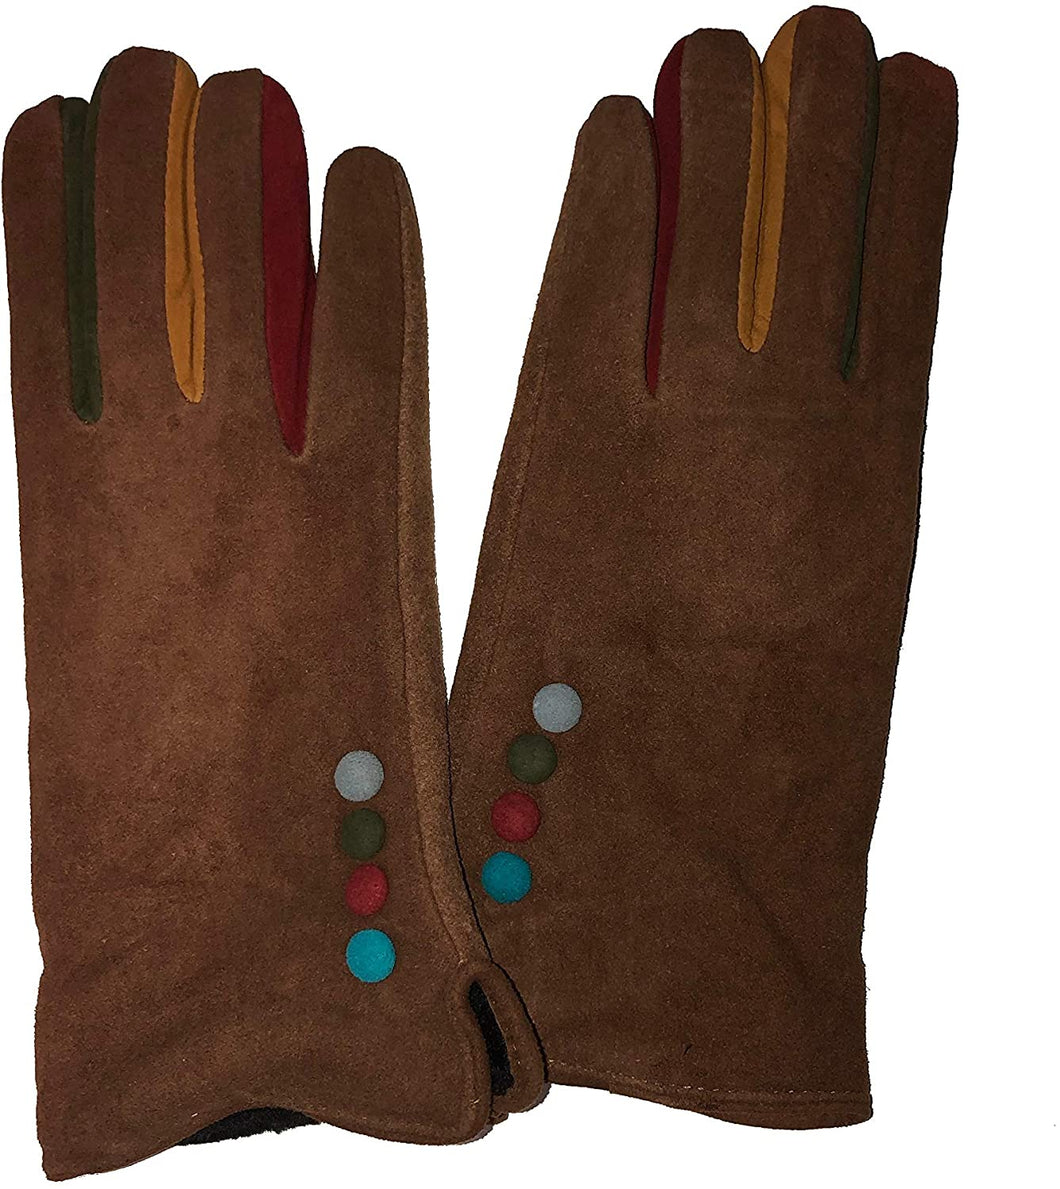 G1501 plain brown ladies Gloves with a splash of colour between the fingers (medium)